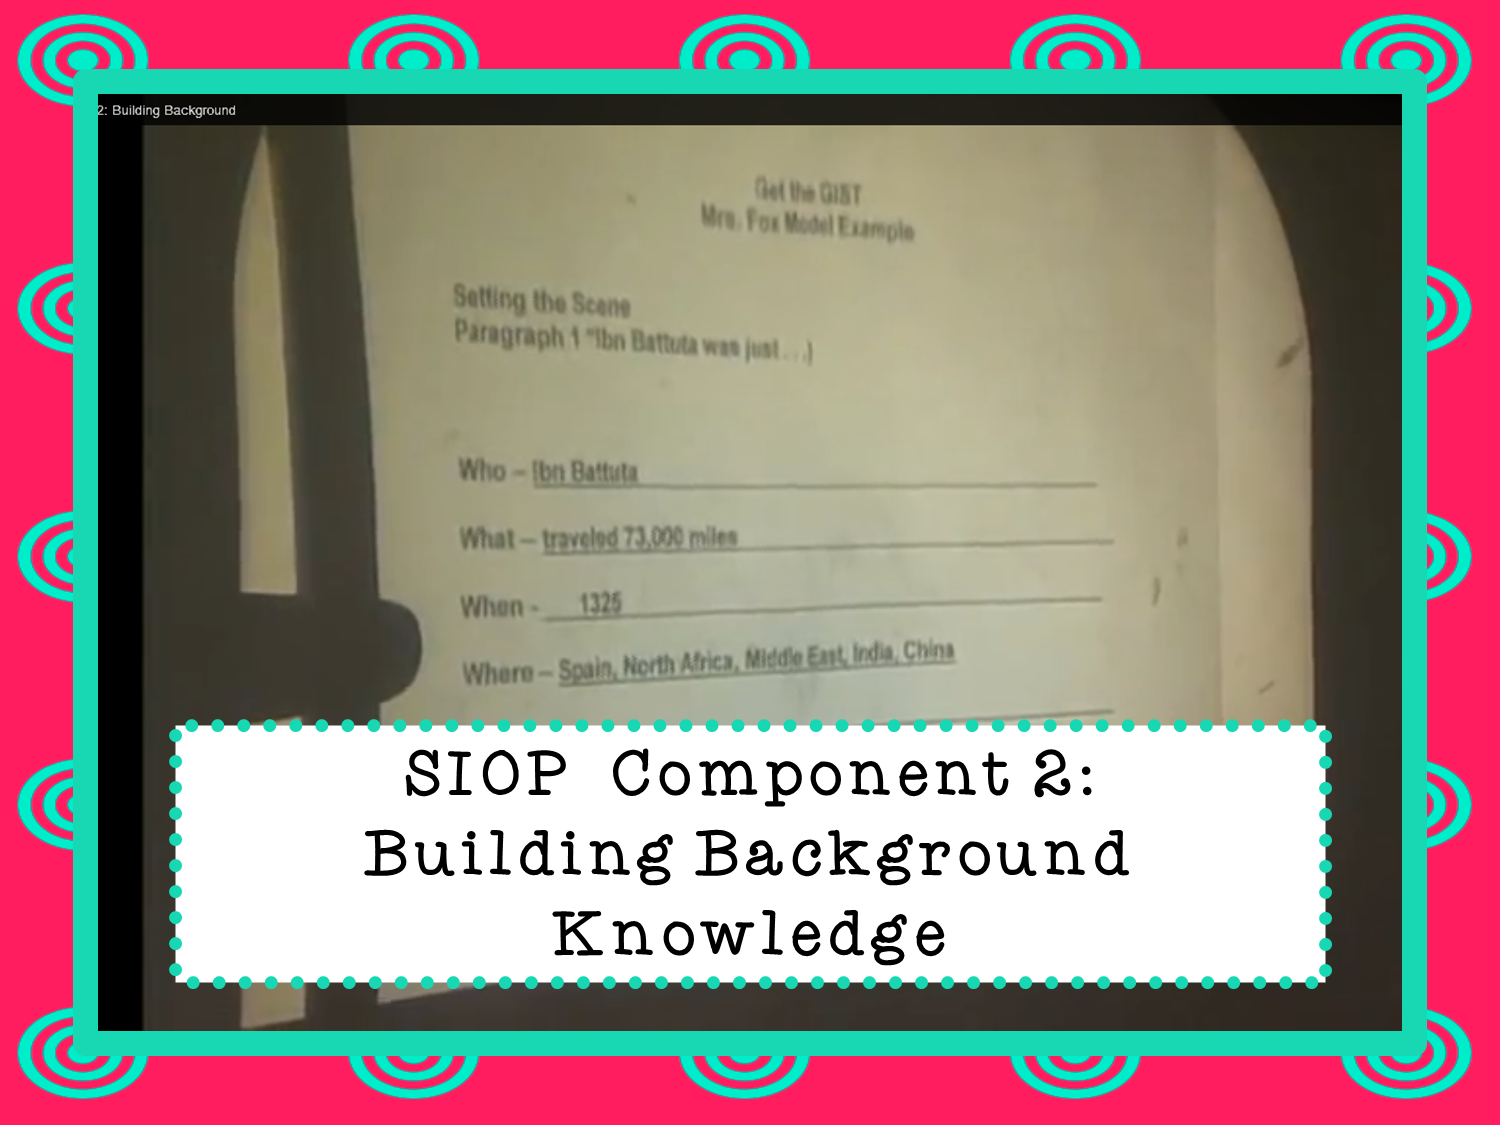 SIOP ESL/ELL Teaching Method Component 2 Building